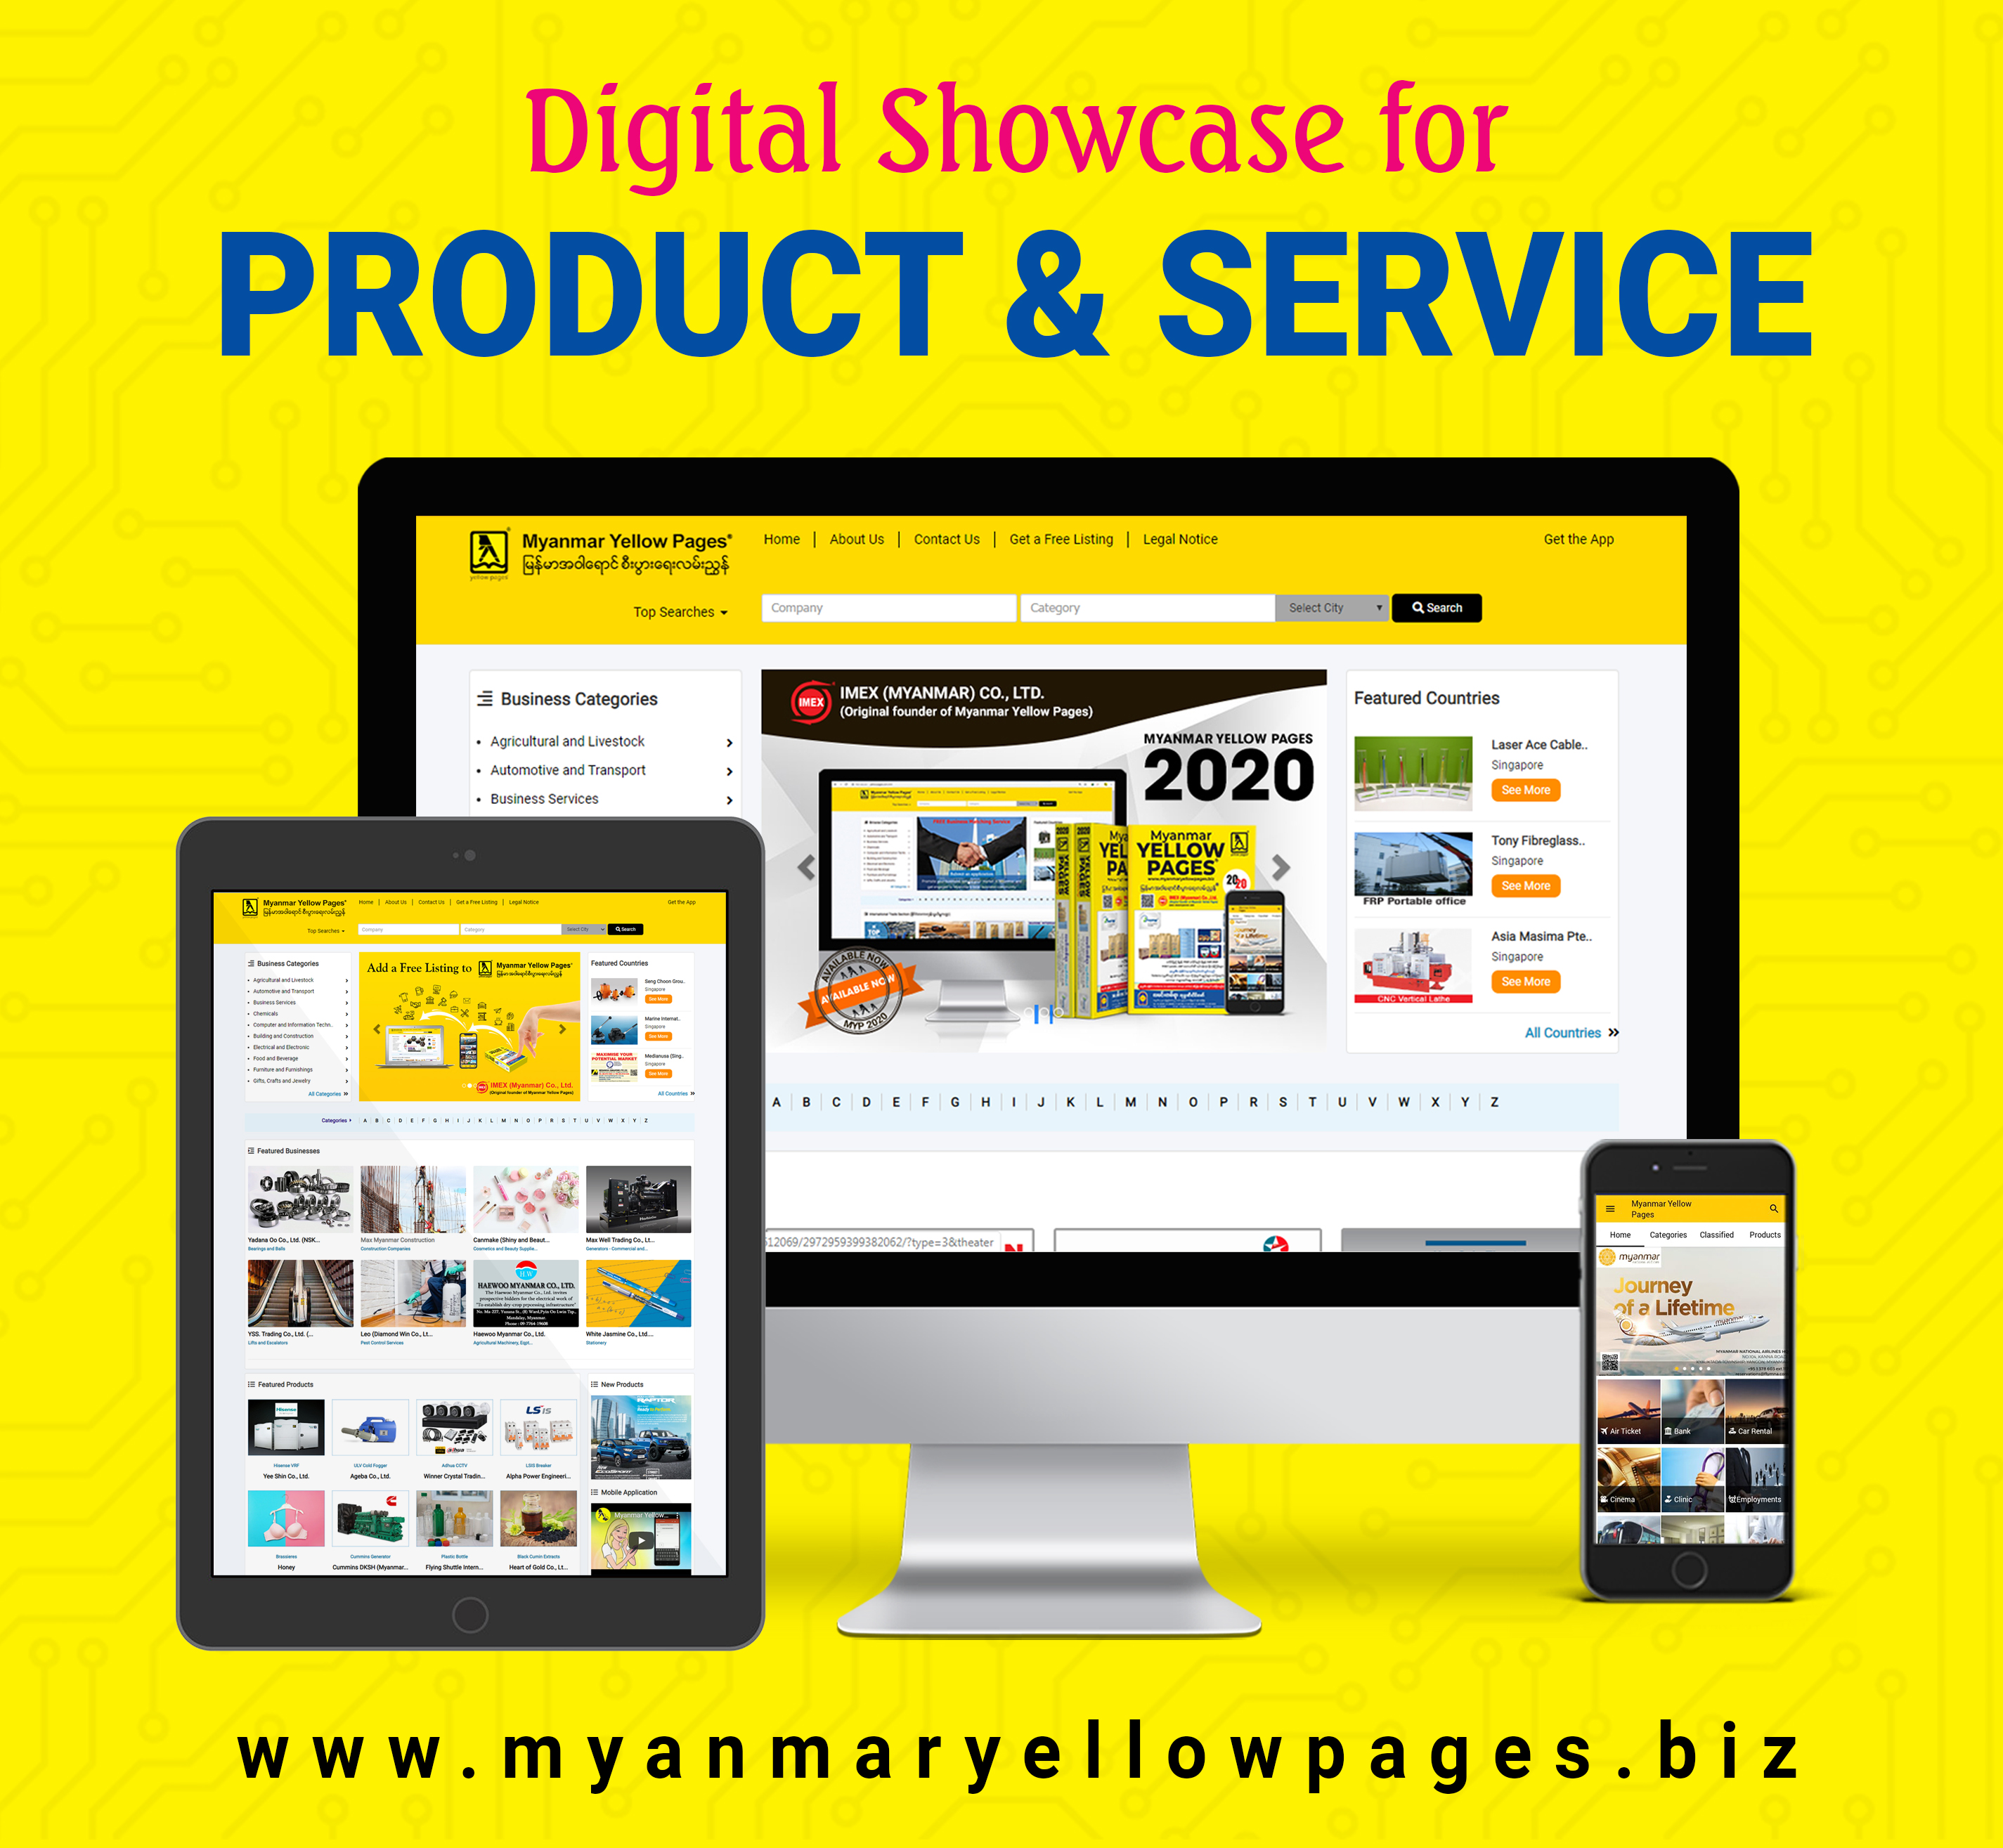 Myanmar Yellow Pages | Business